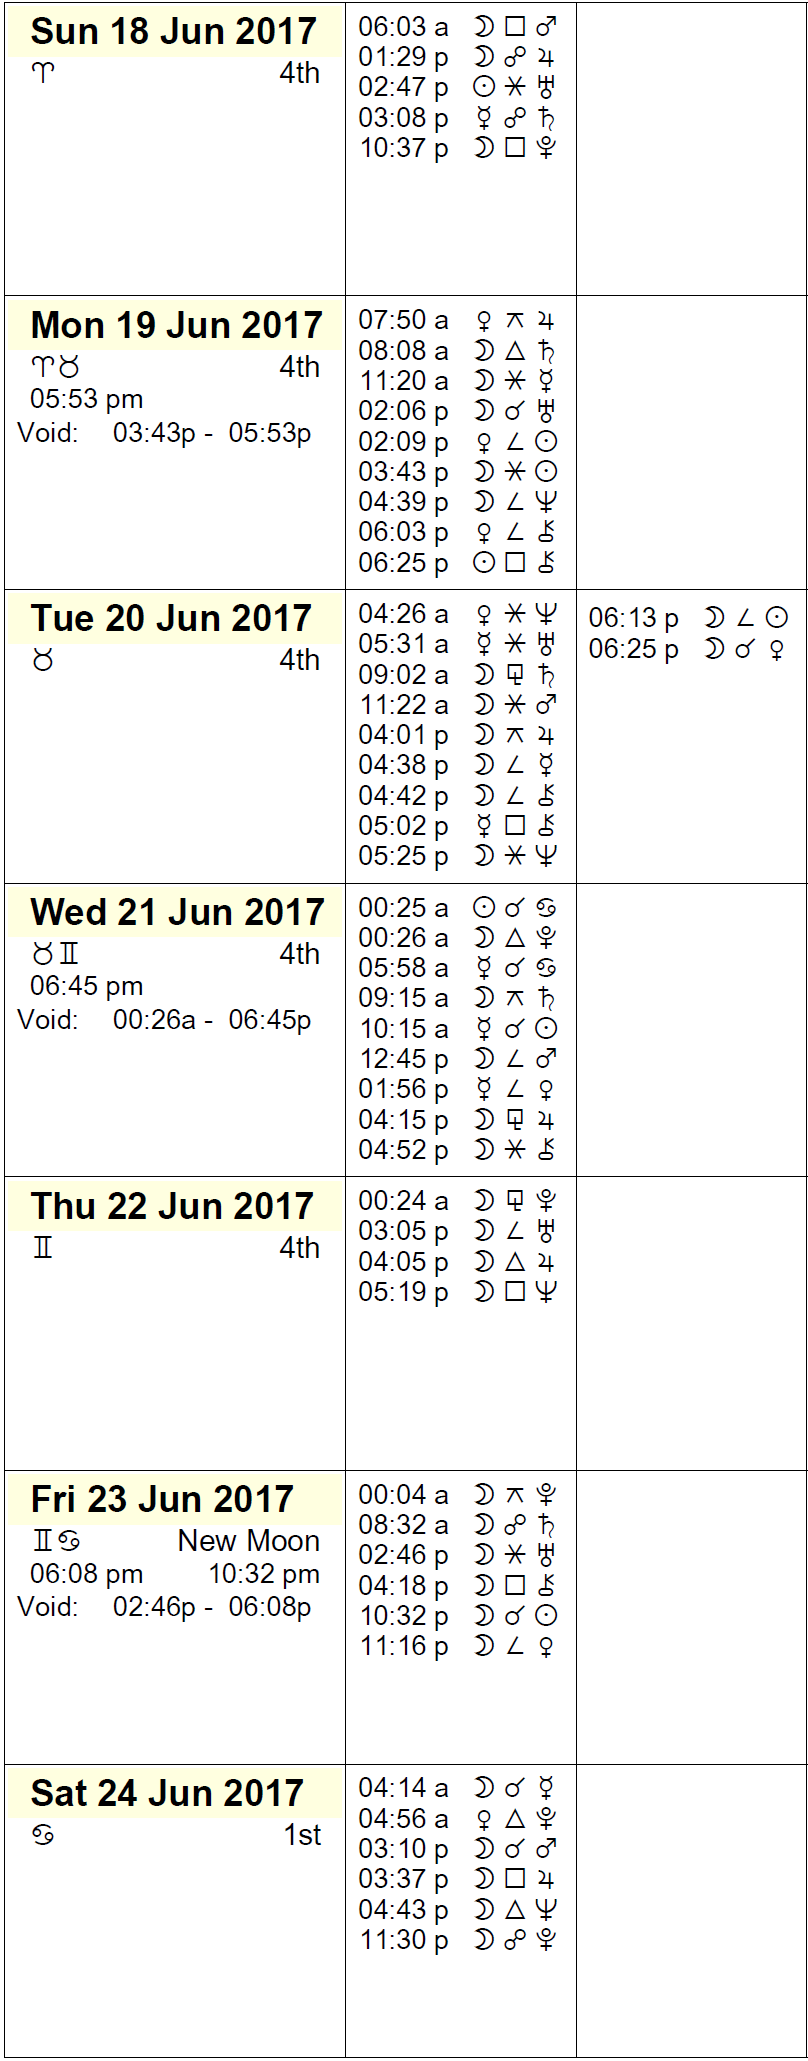 This Week in Astrology Calendar - June 18-24, 2017